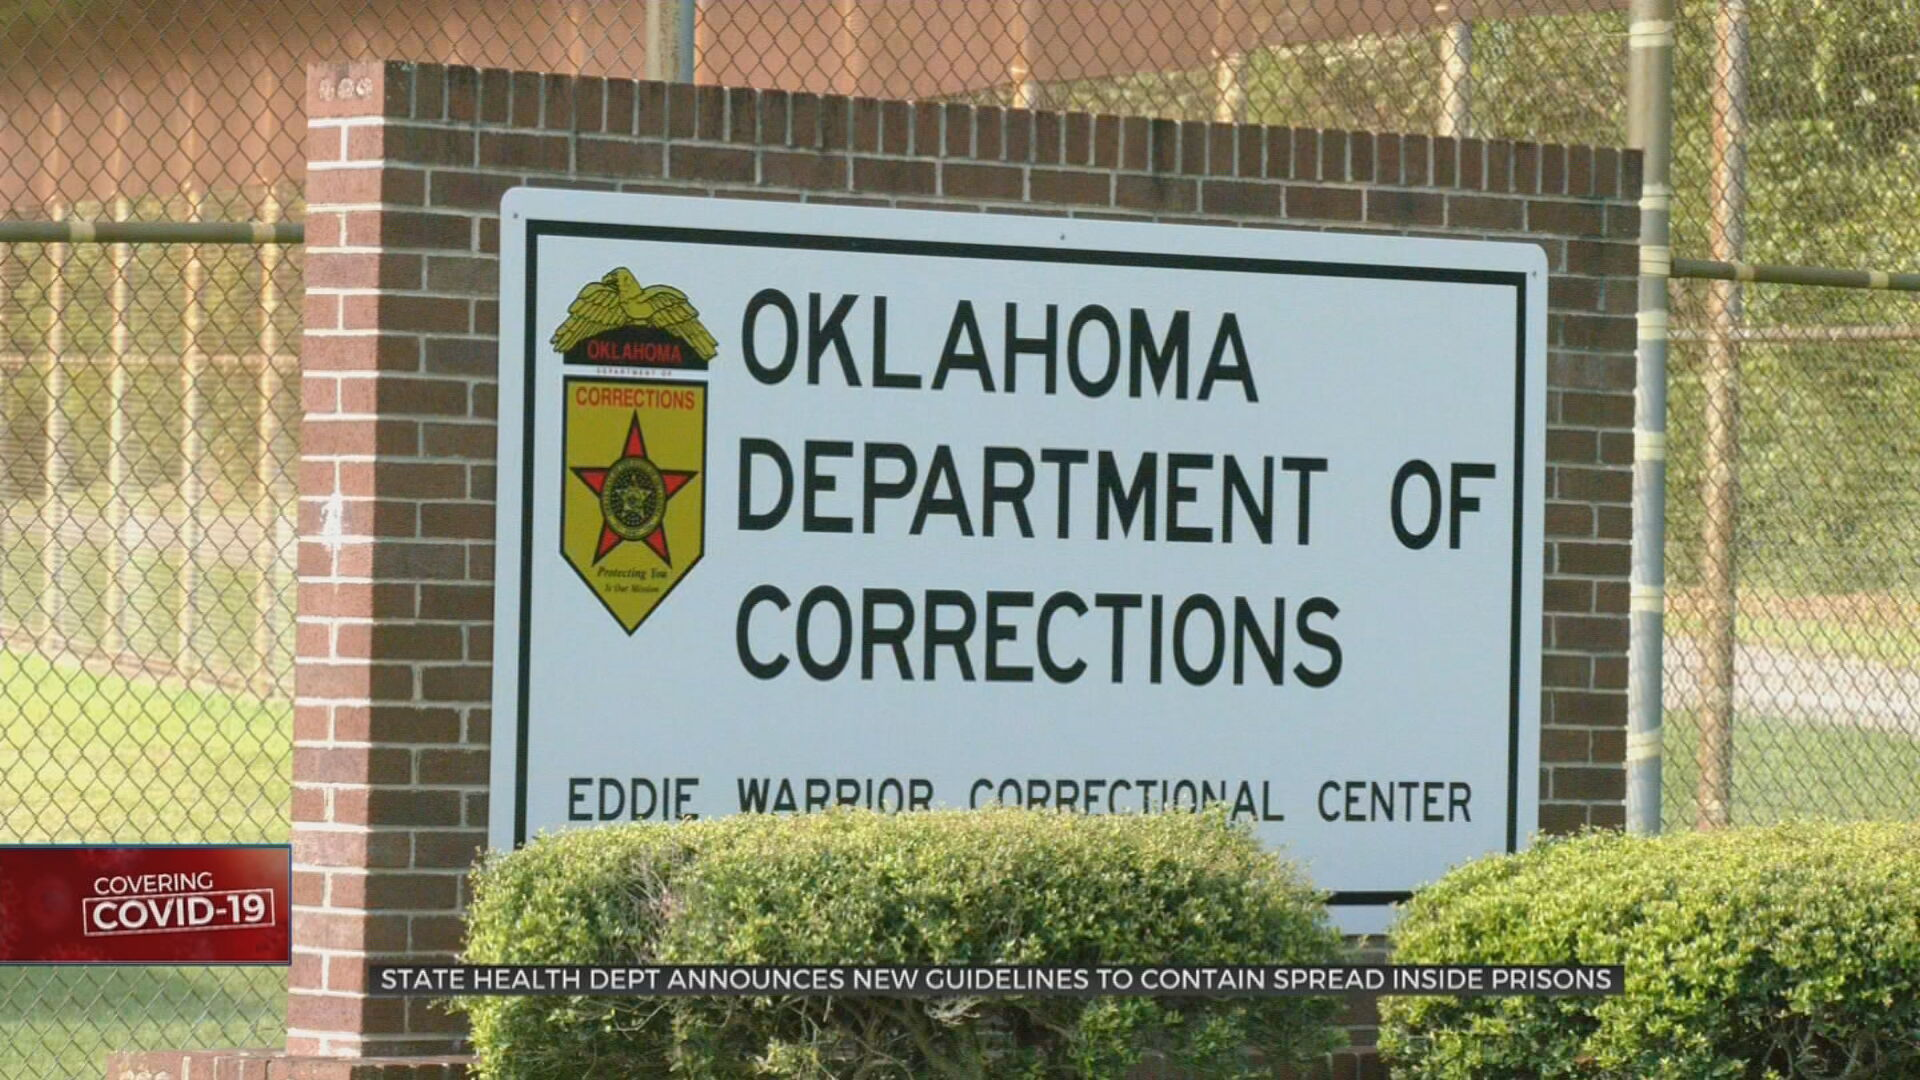 State Health Dept Announces New Guidelines To Contain COVID-19 In Prisons